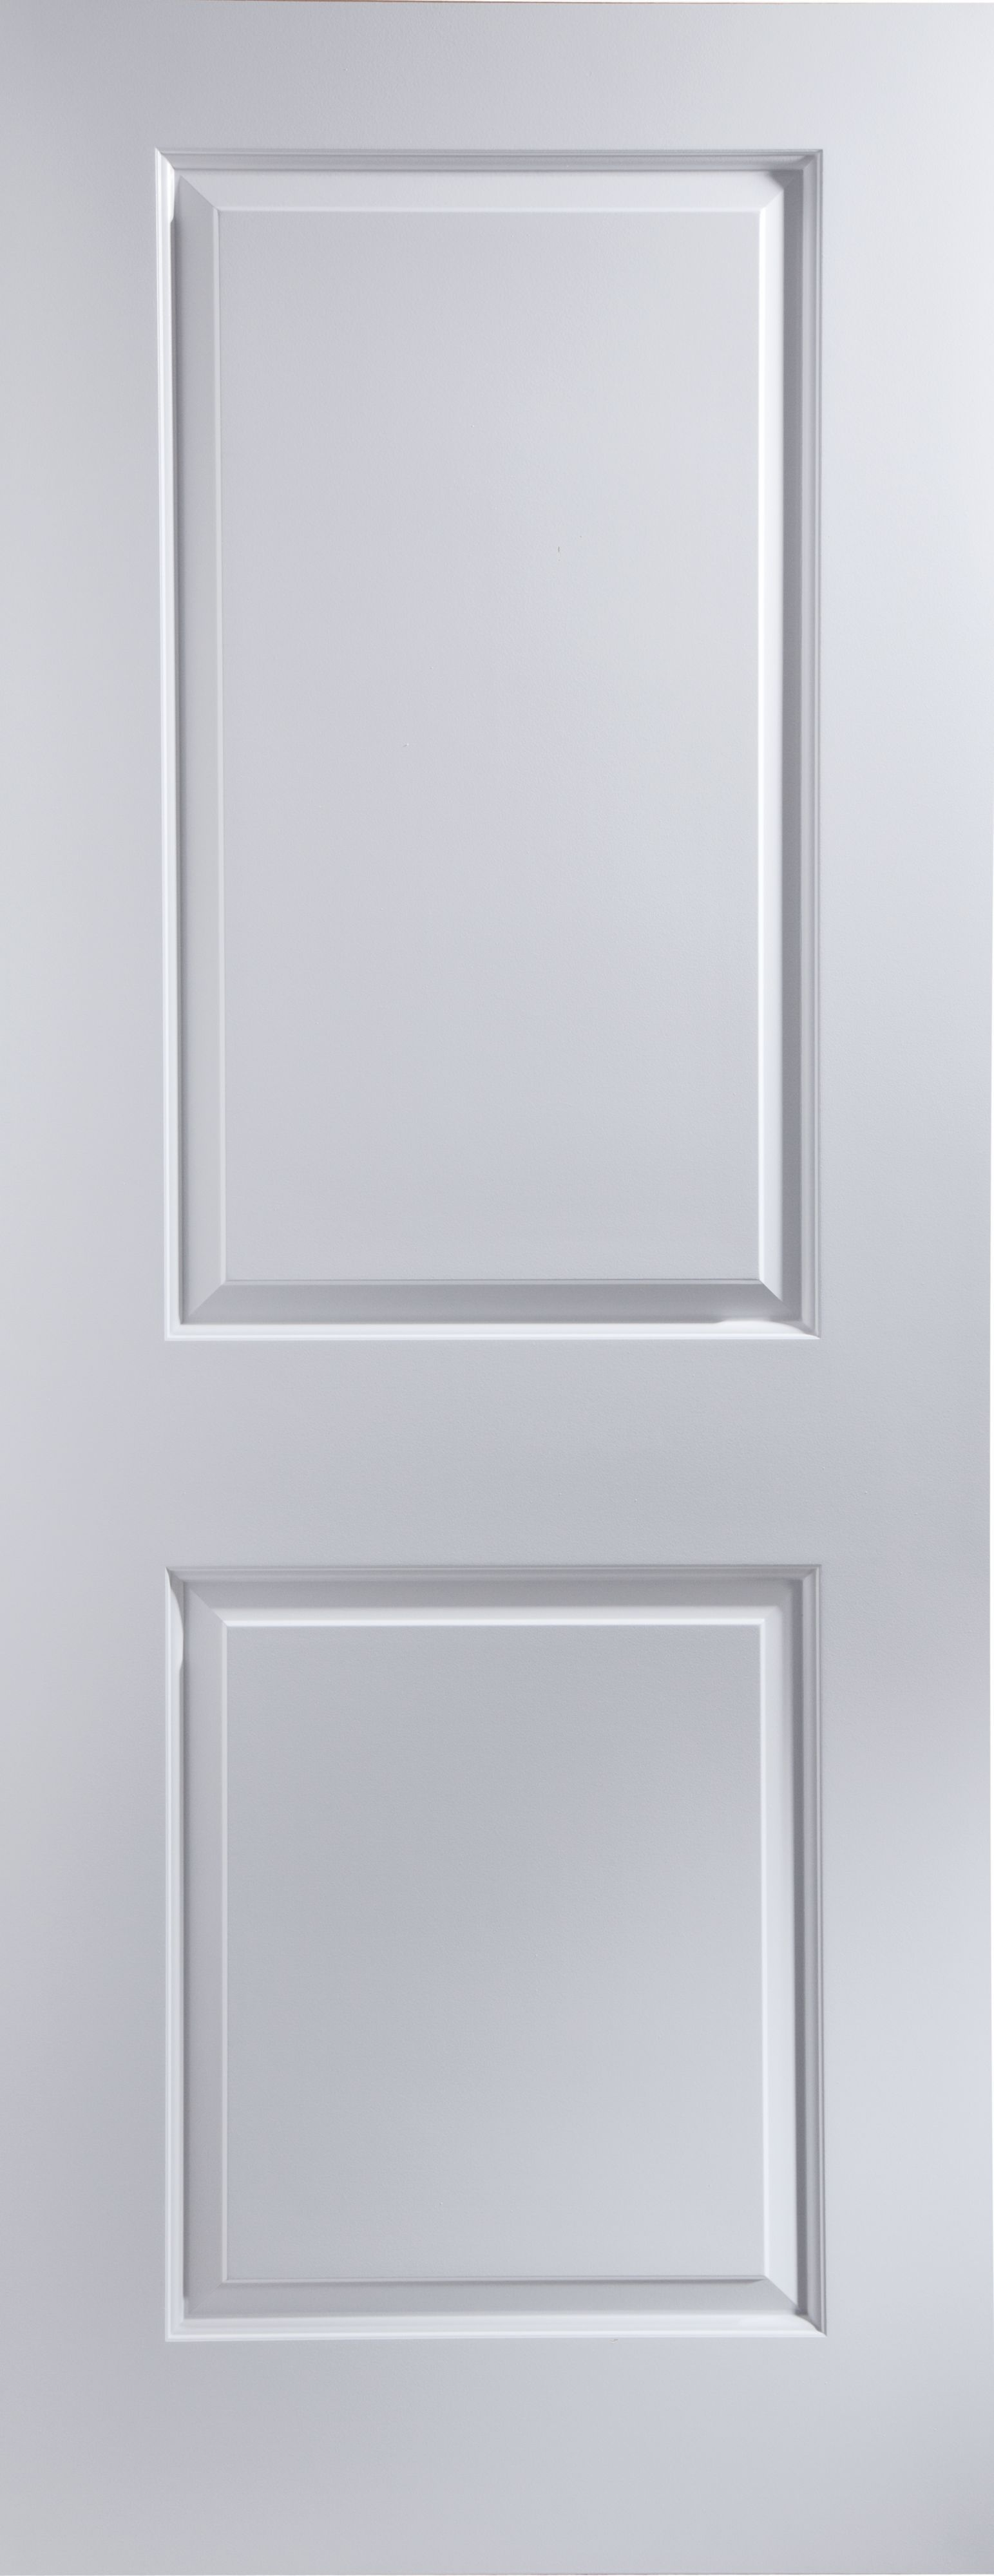 2 Panel Pre Painted White Smooth Unglazed Door Kit H 2040mm W 826mm Departments Diy At B Q